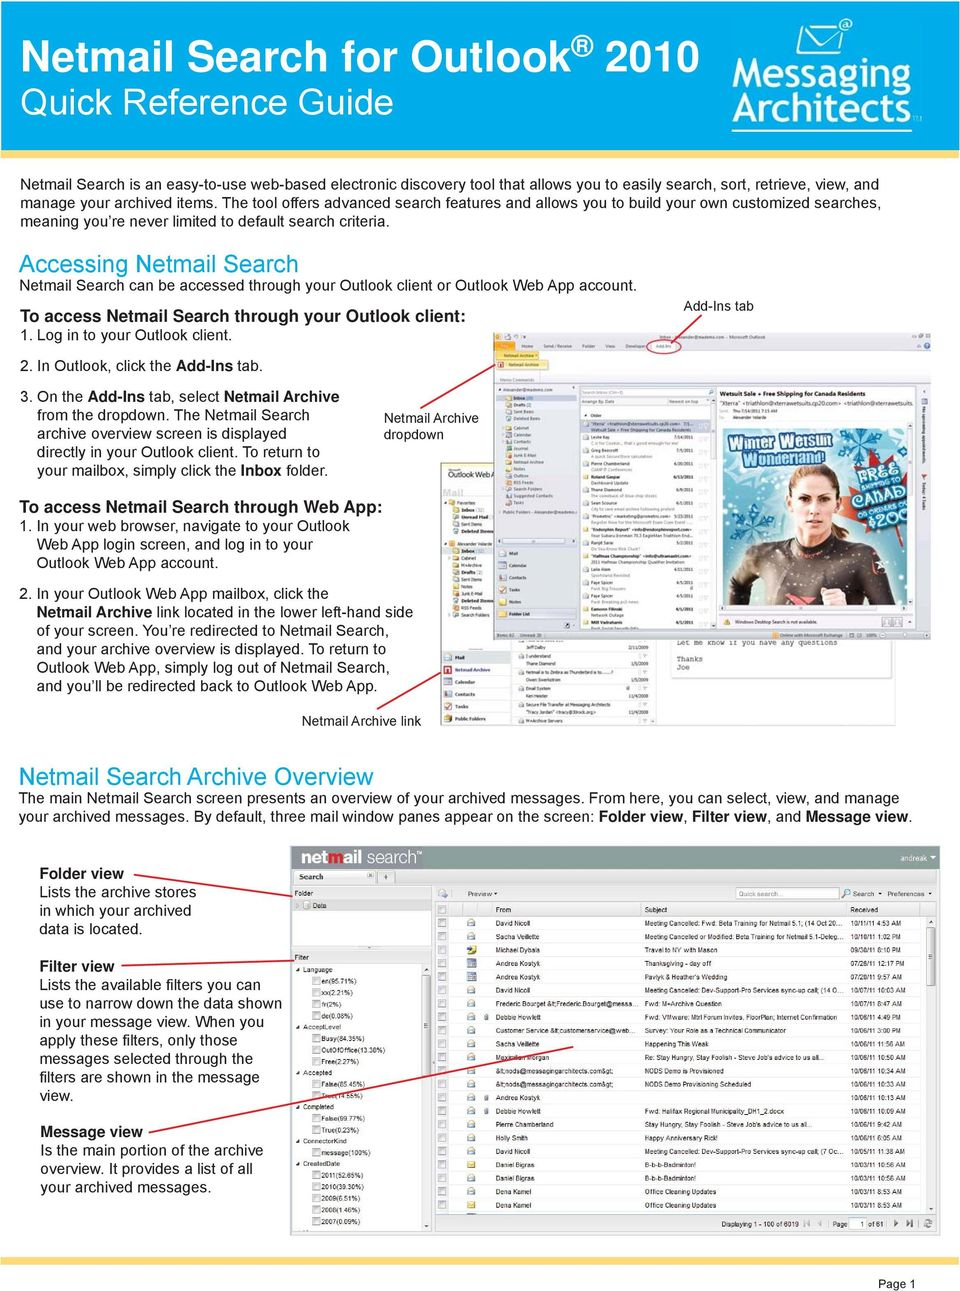 Accessing Netmail Search Netmail Search can be accessed through your Outlook client or Outlook Web App account. To access Netmail Search through your Outlook client: 1. Log in to your Outlook client.